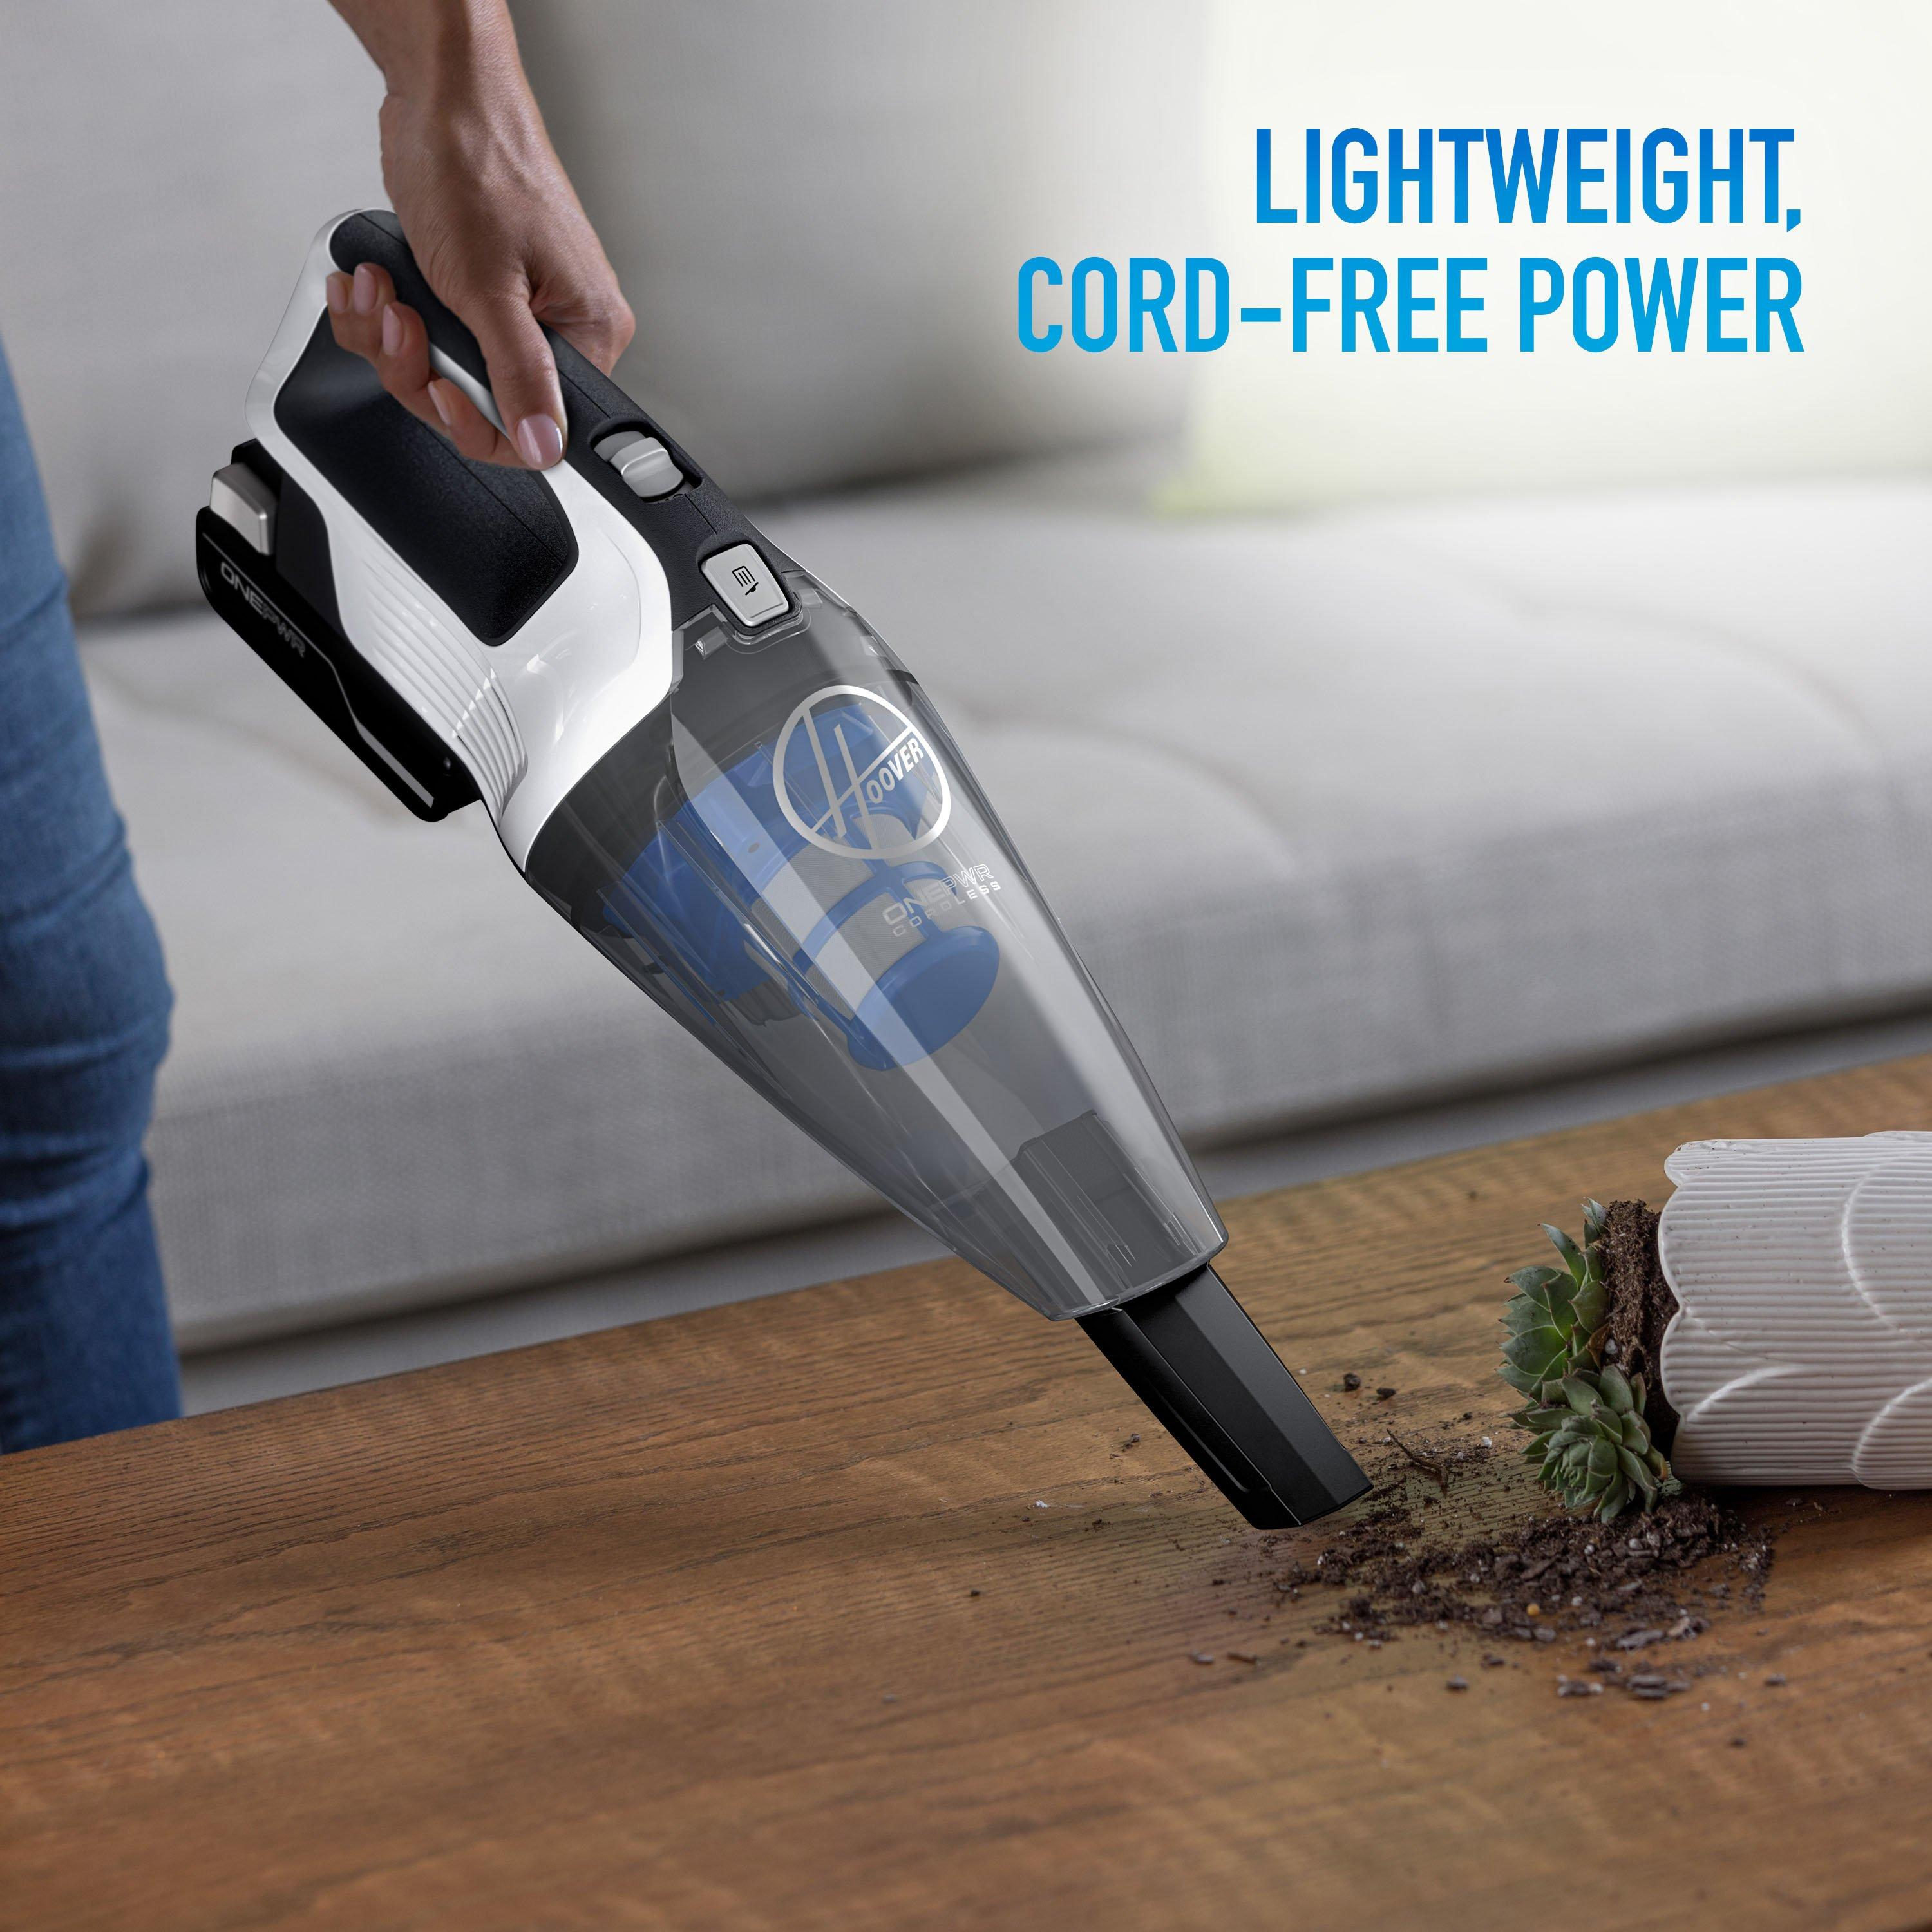 ONEPWR Cordless Hand Vacuum - Tool Only2